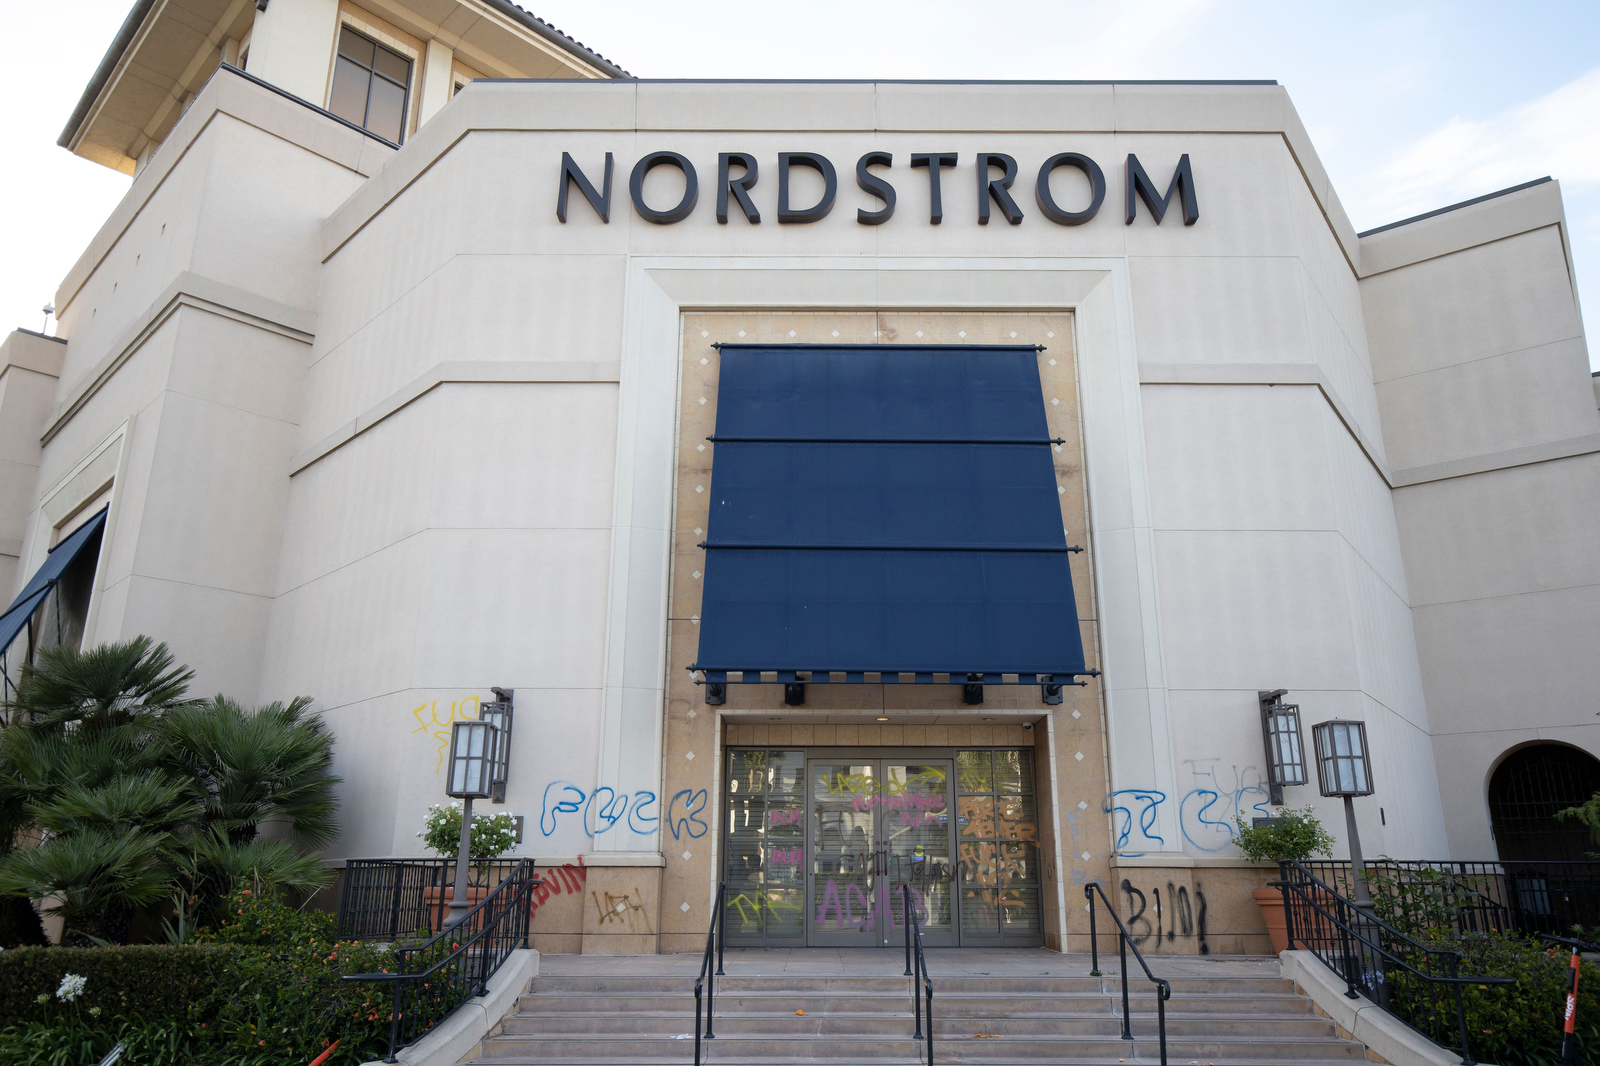 Nordstrom's storefront at The Grove after the May 30 protests.